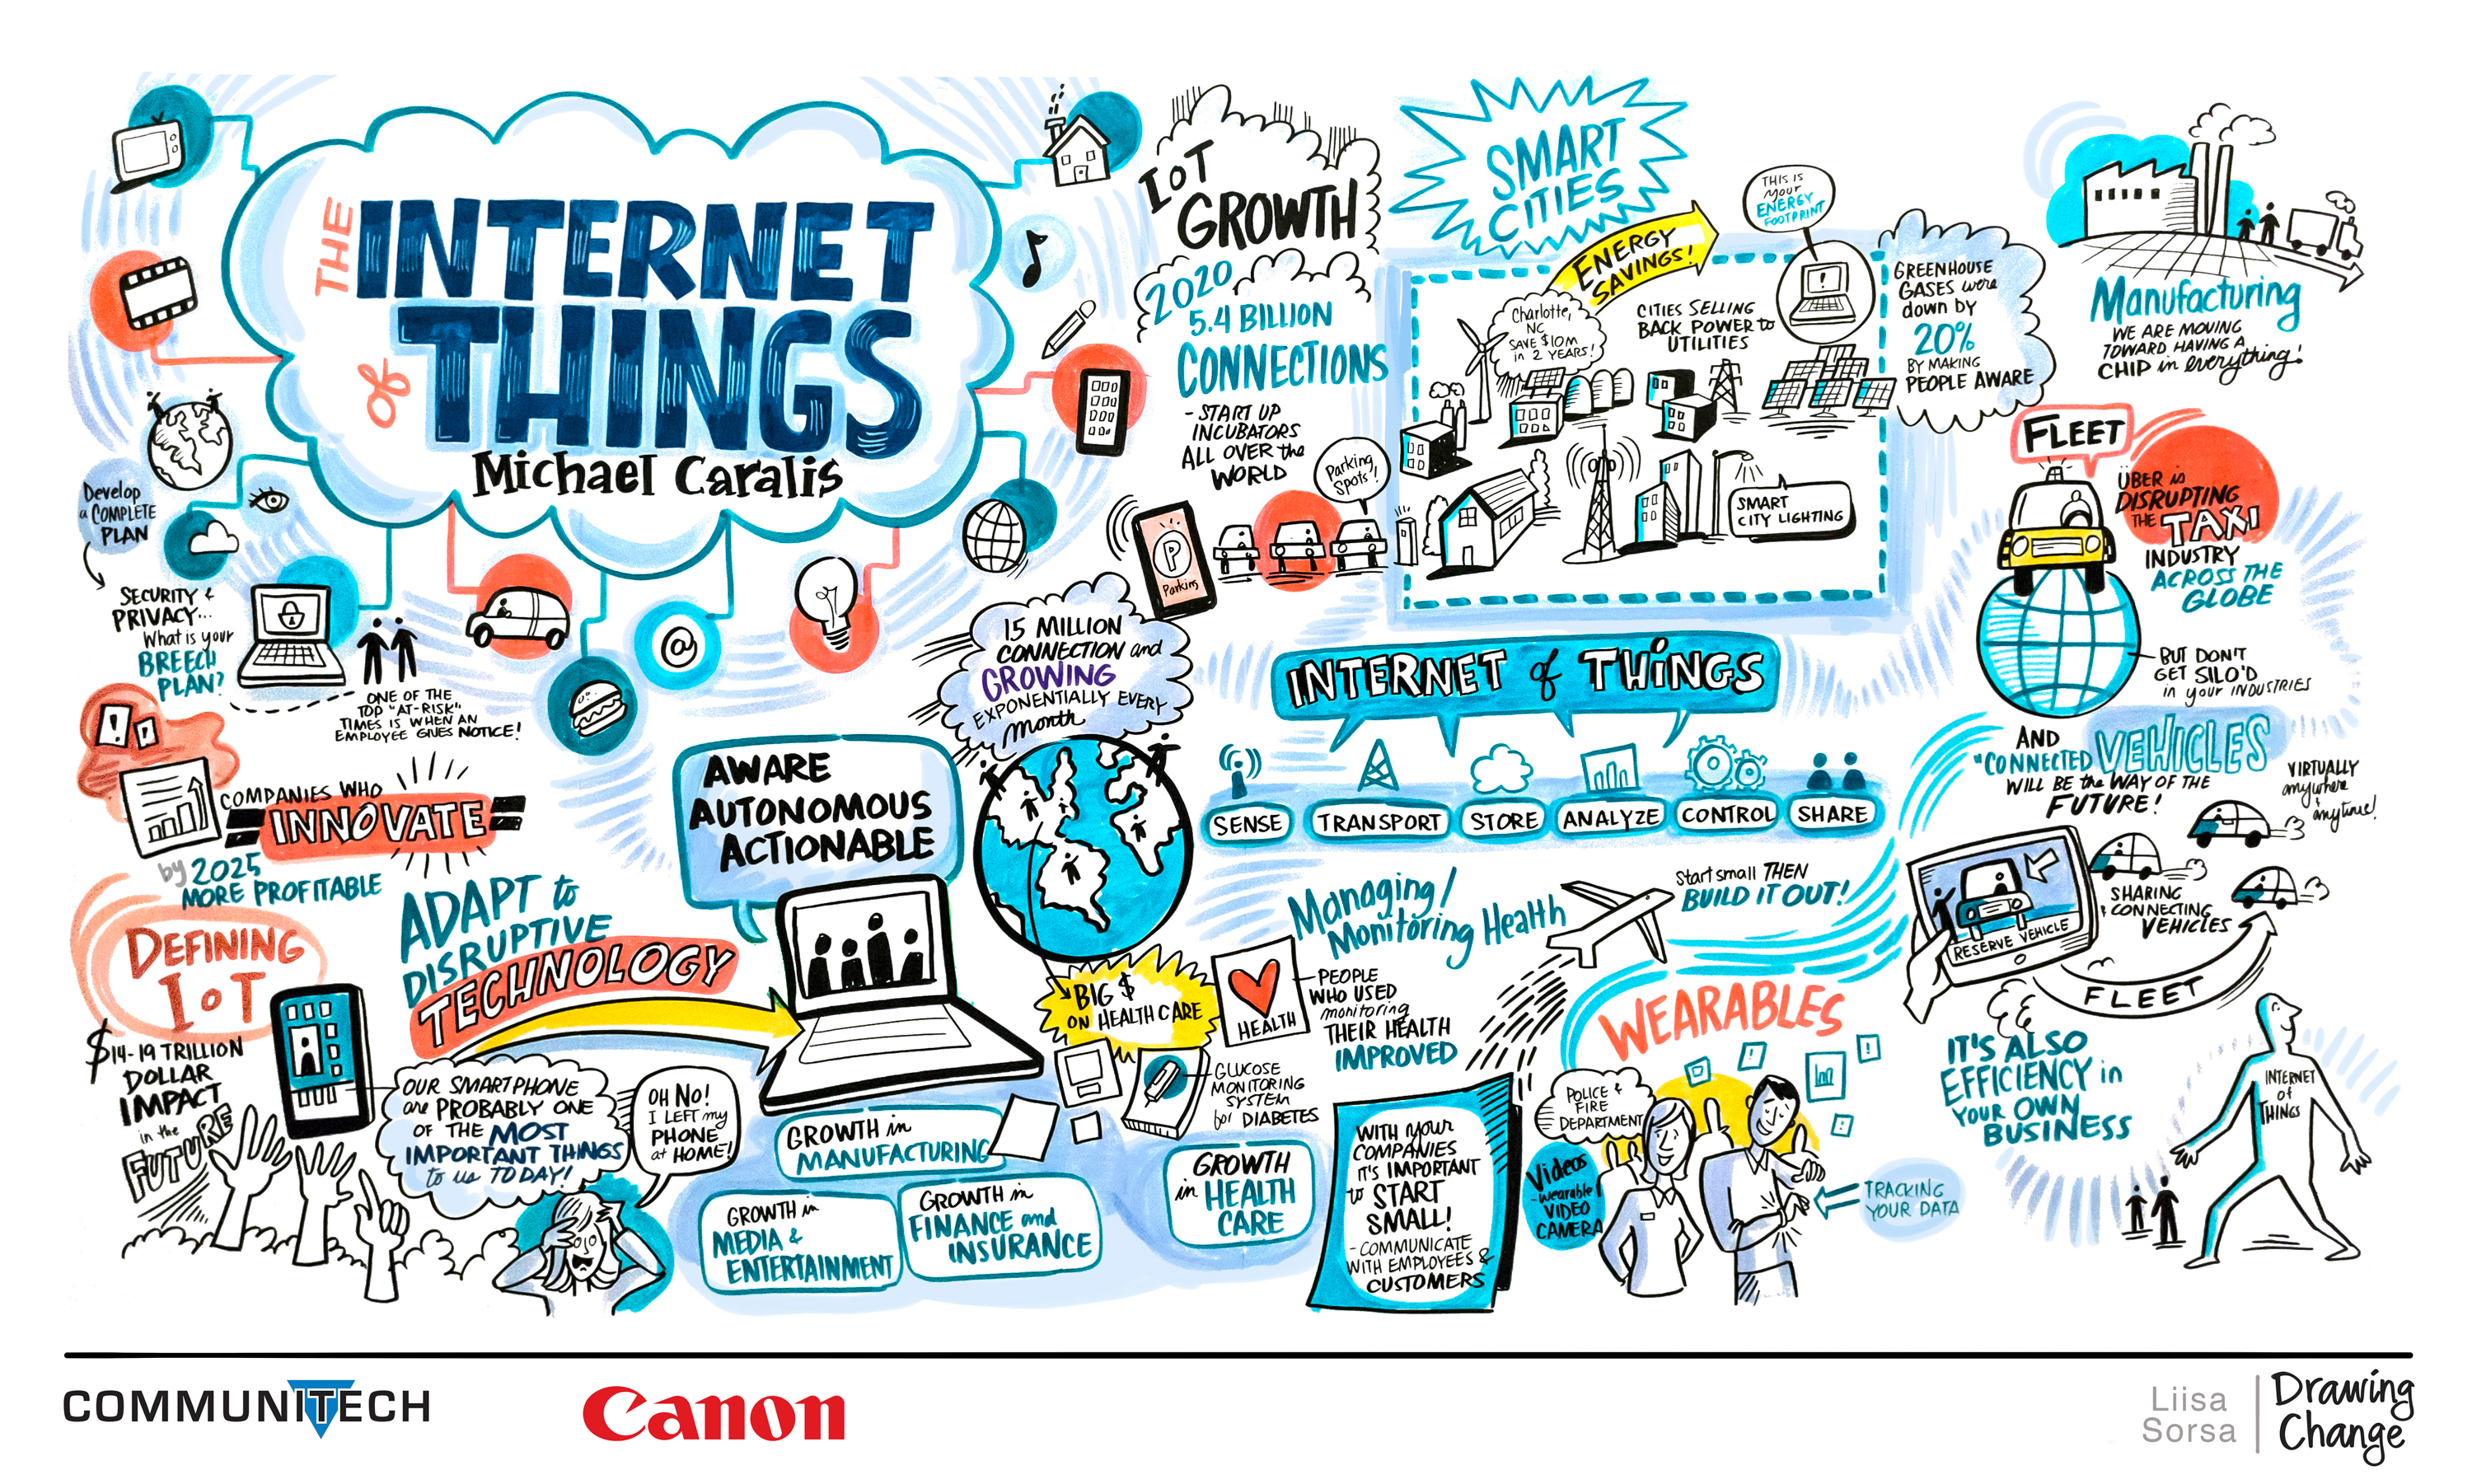 Michael-Caralis graphic recording